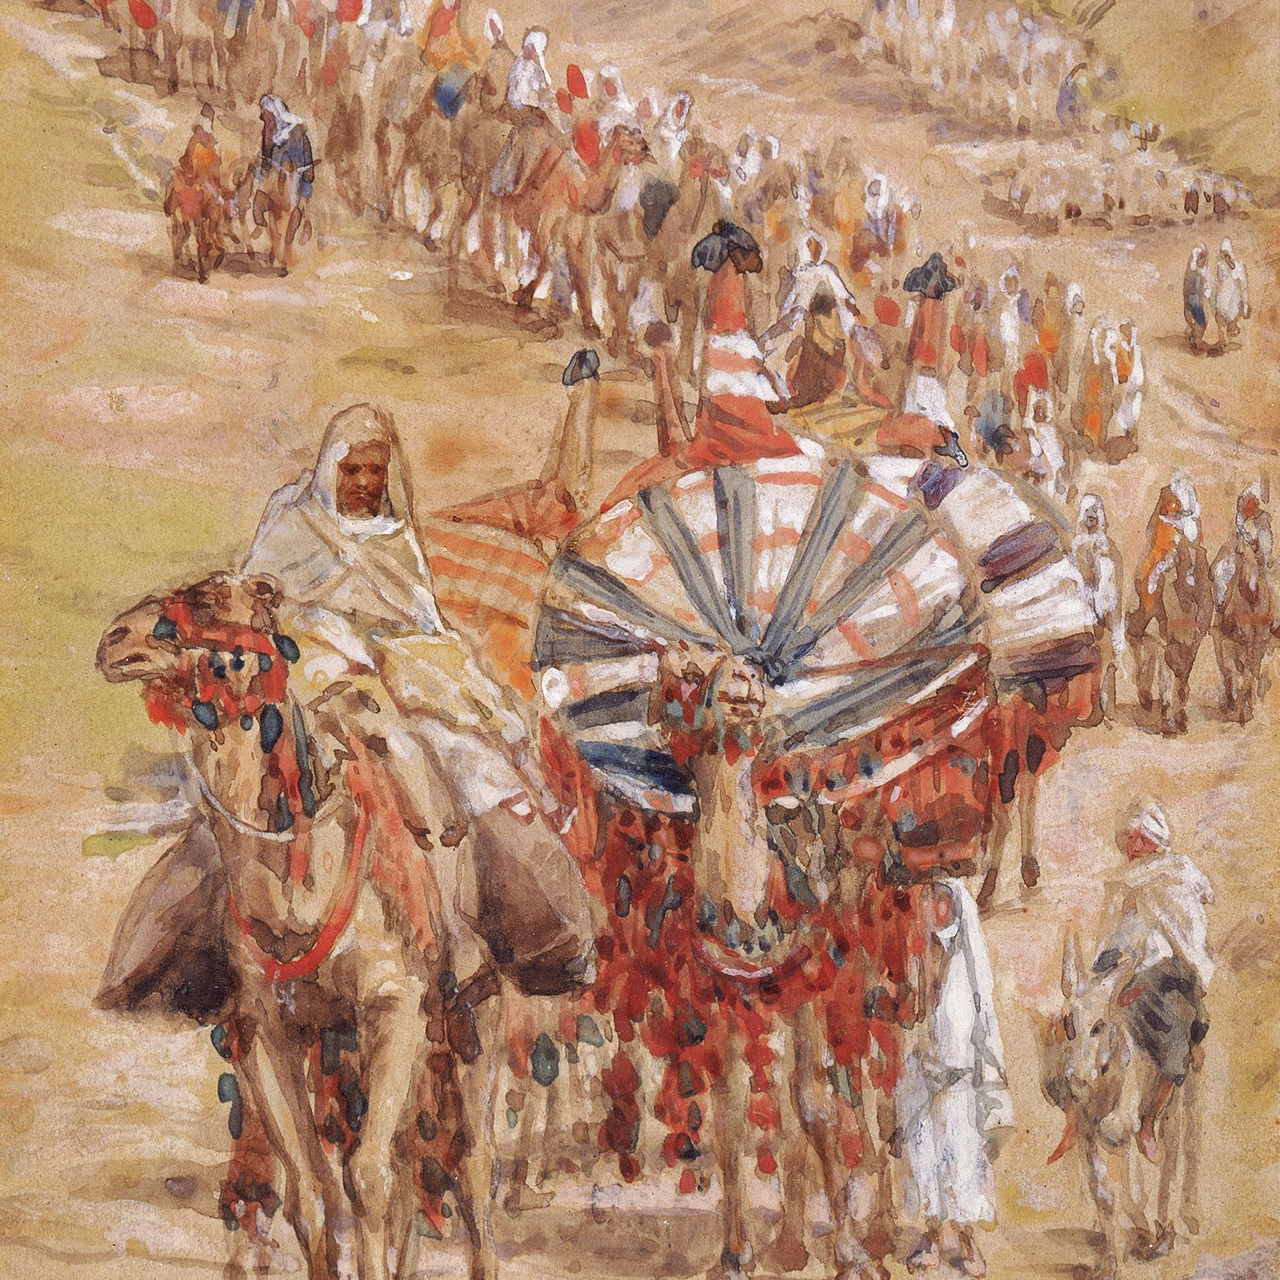 """The Caravan of Abraham"" by James Tissot, ca. 1900."